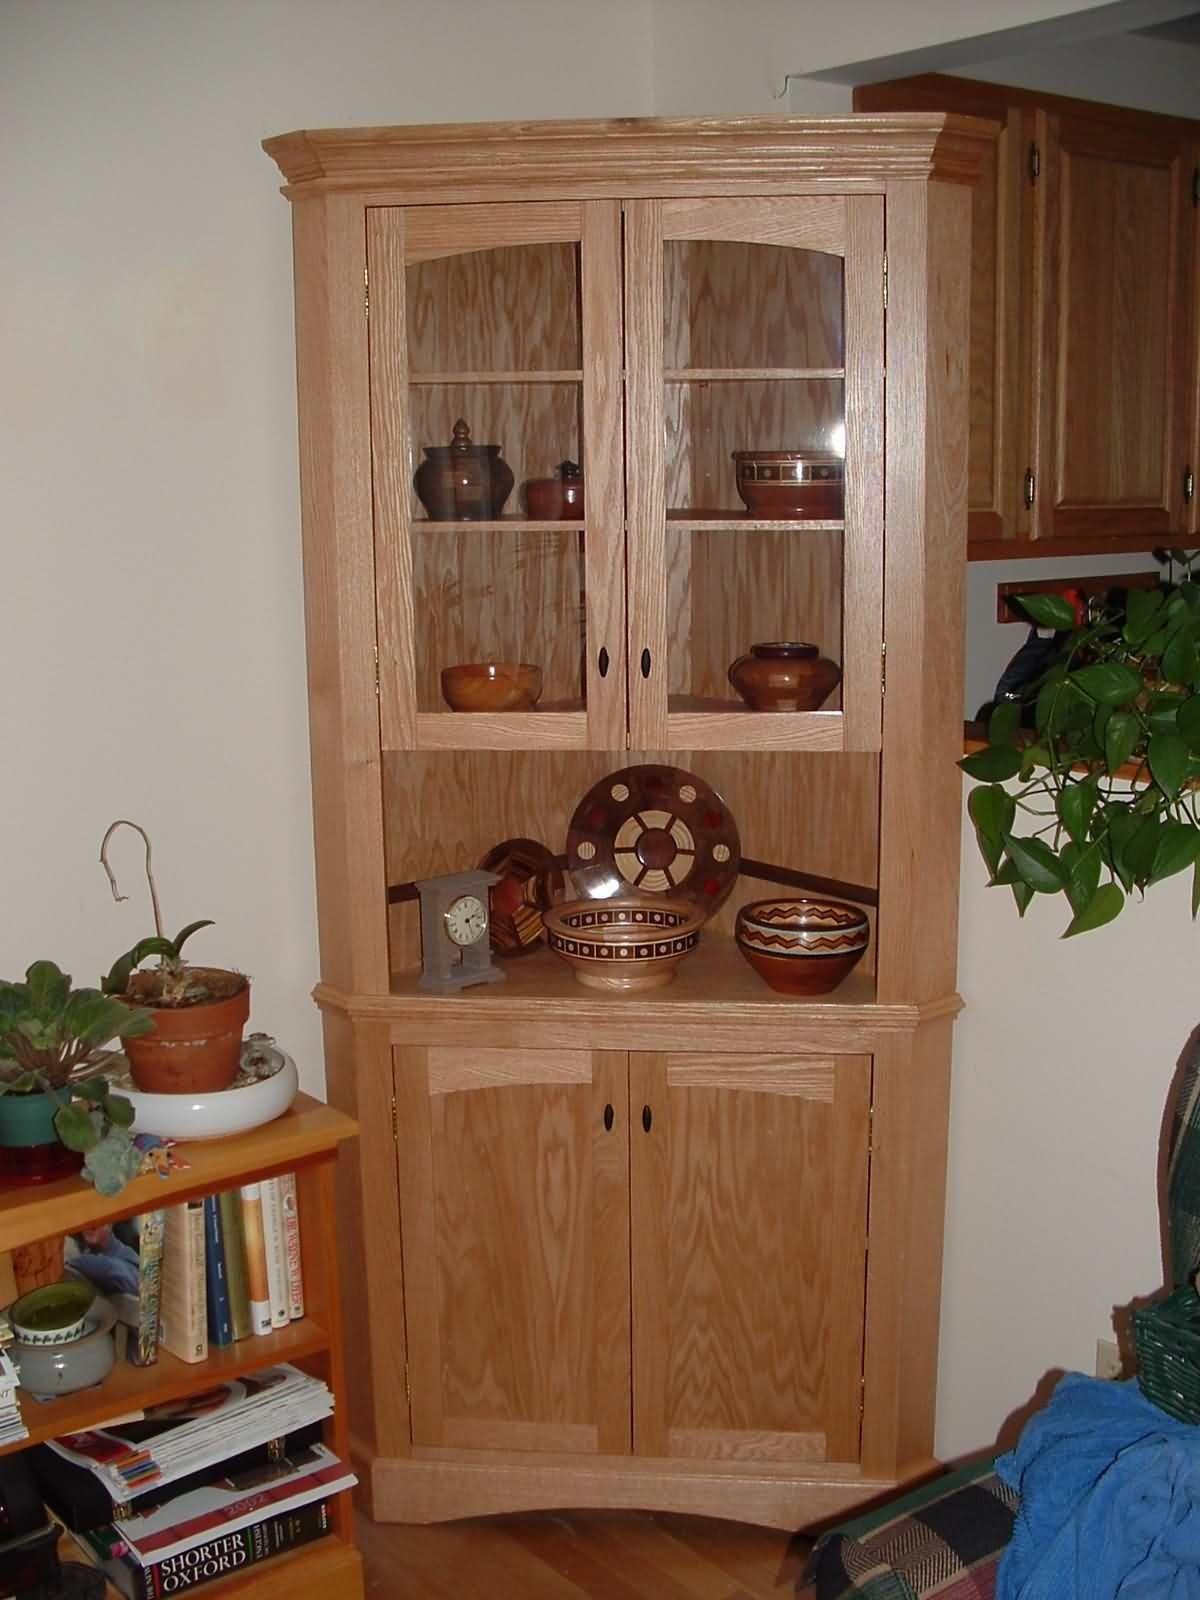 Corner Cabinet Wood Plans  Httpbetdaffaires  Pinterest Amazing Unfinished Corner Cabinets For Dining Room 2018